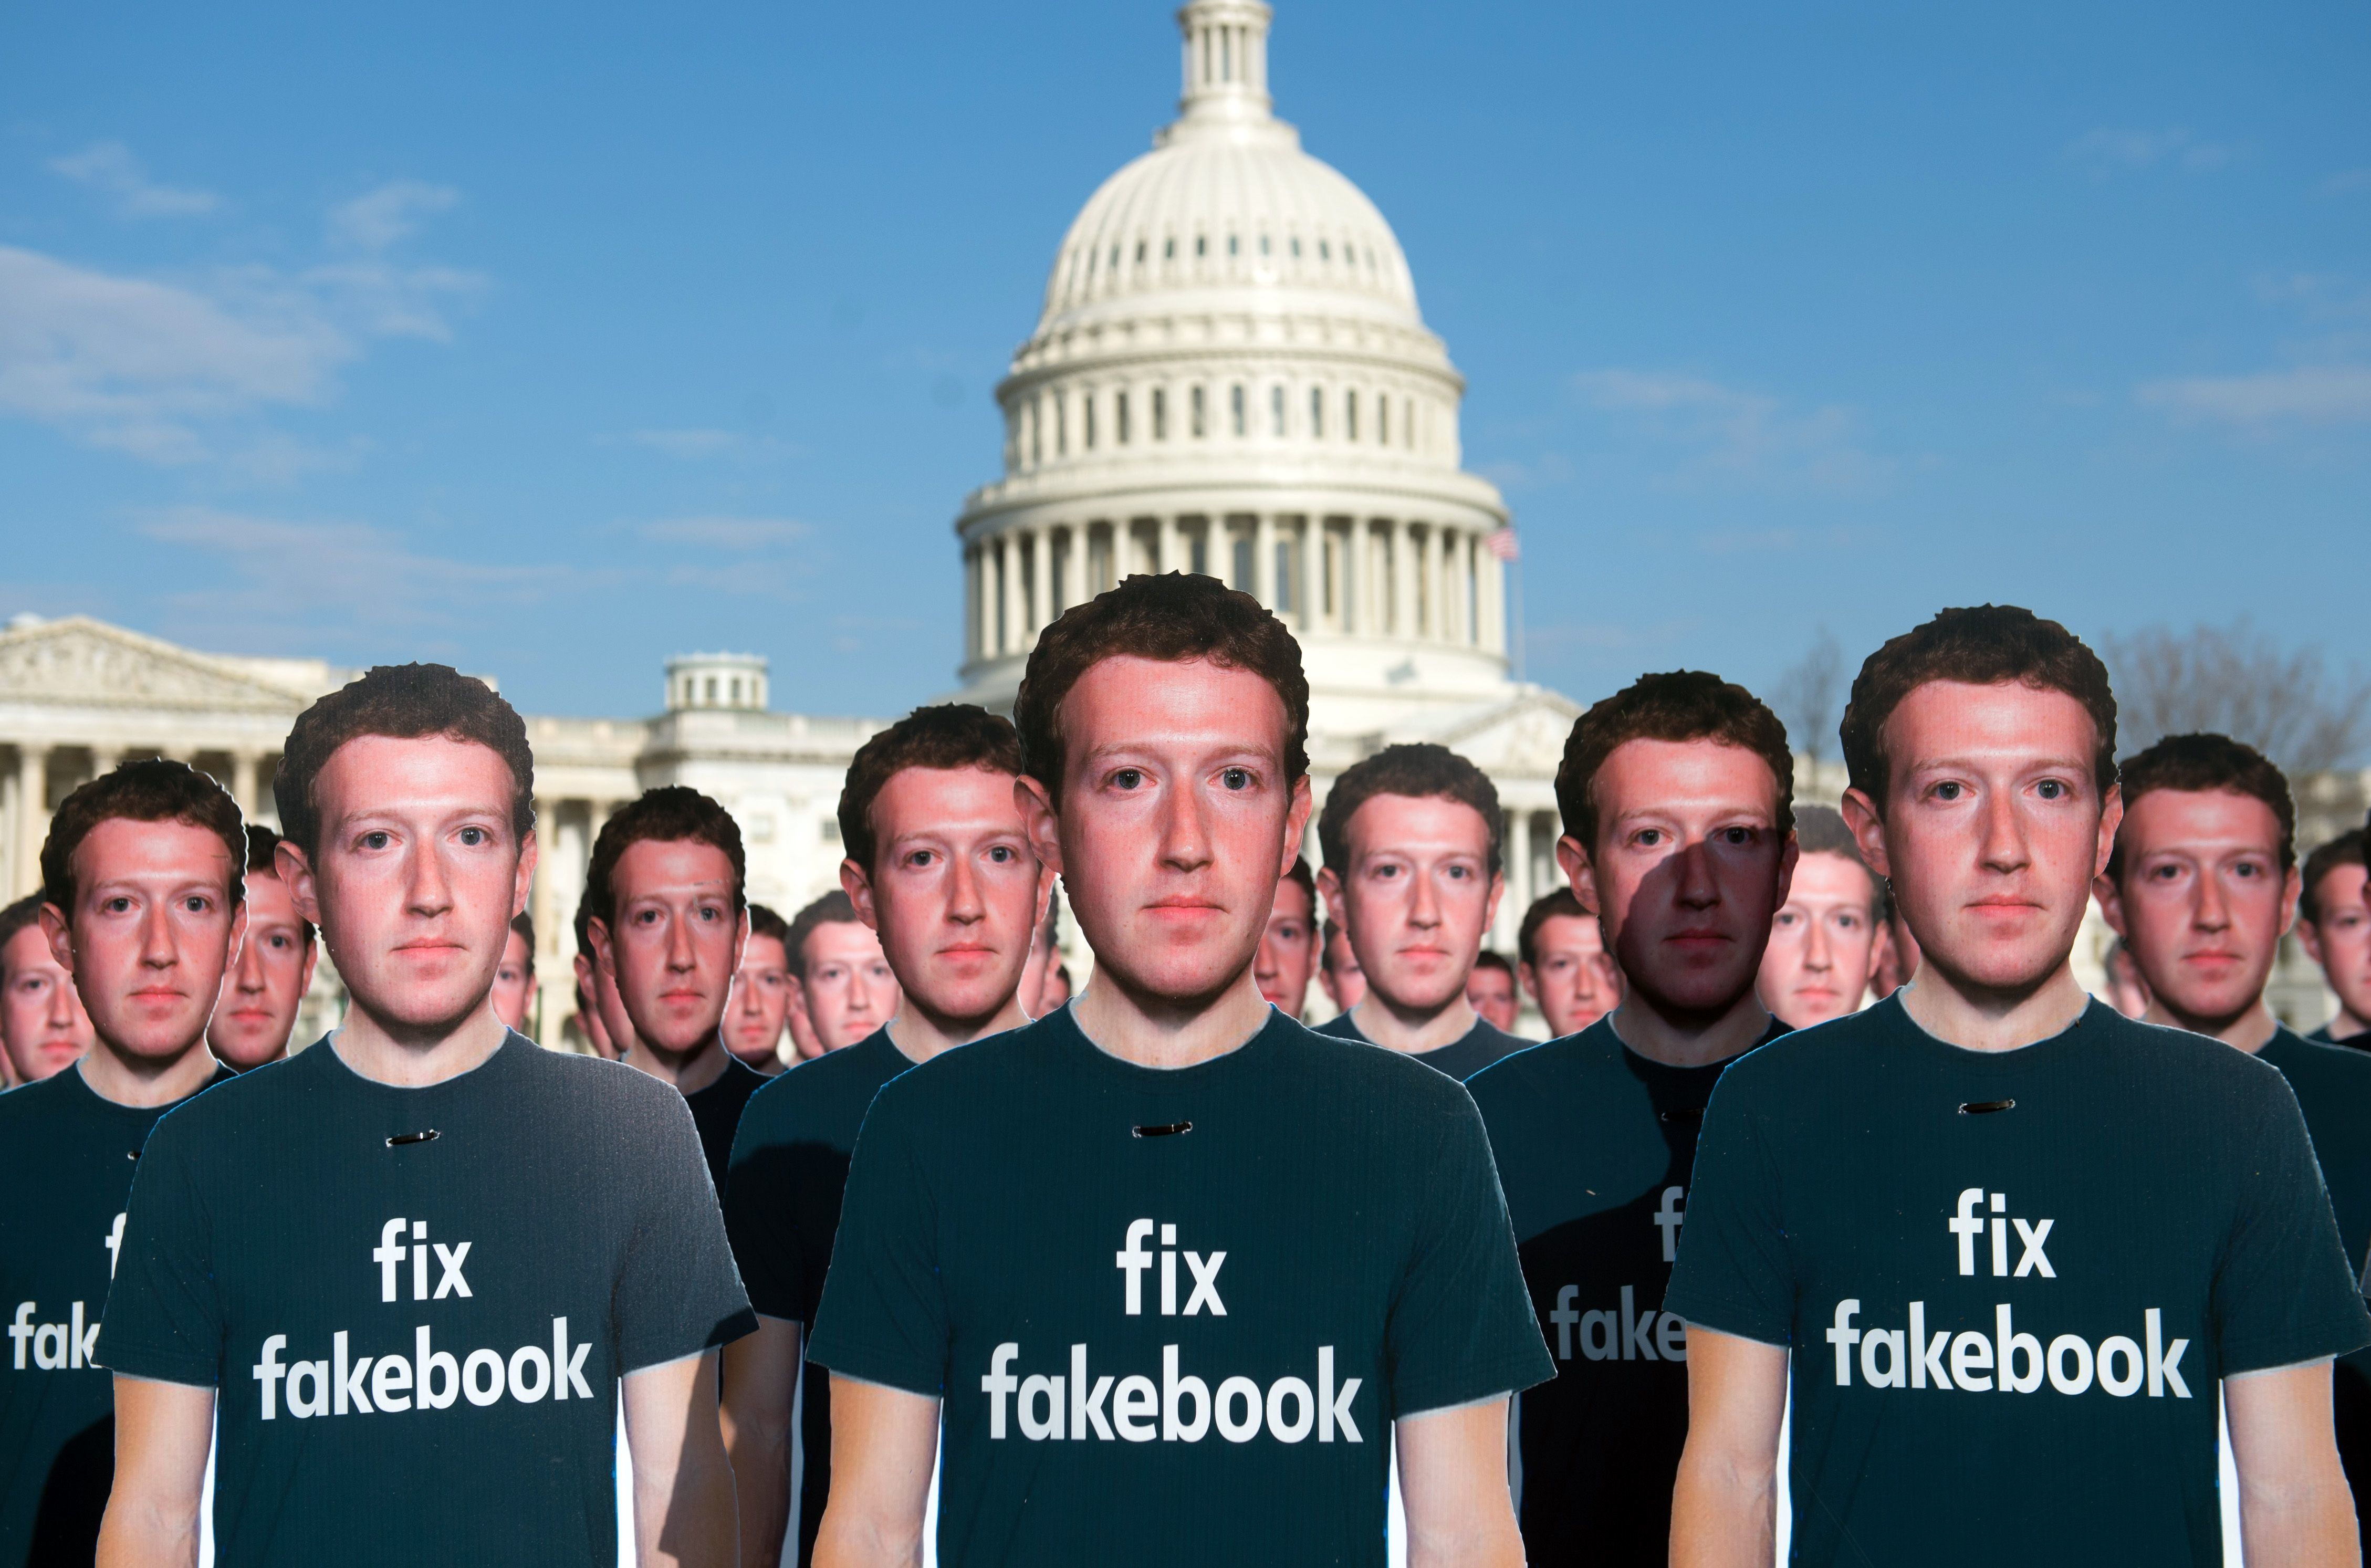 One hundred cardboard cutouts of Facebook founder and CEO Mark Zuckerberg stand outside the U.S. Capitol.